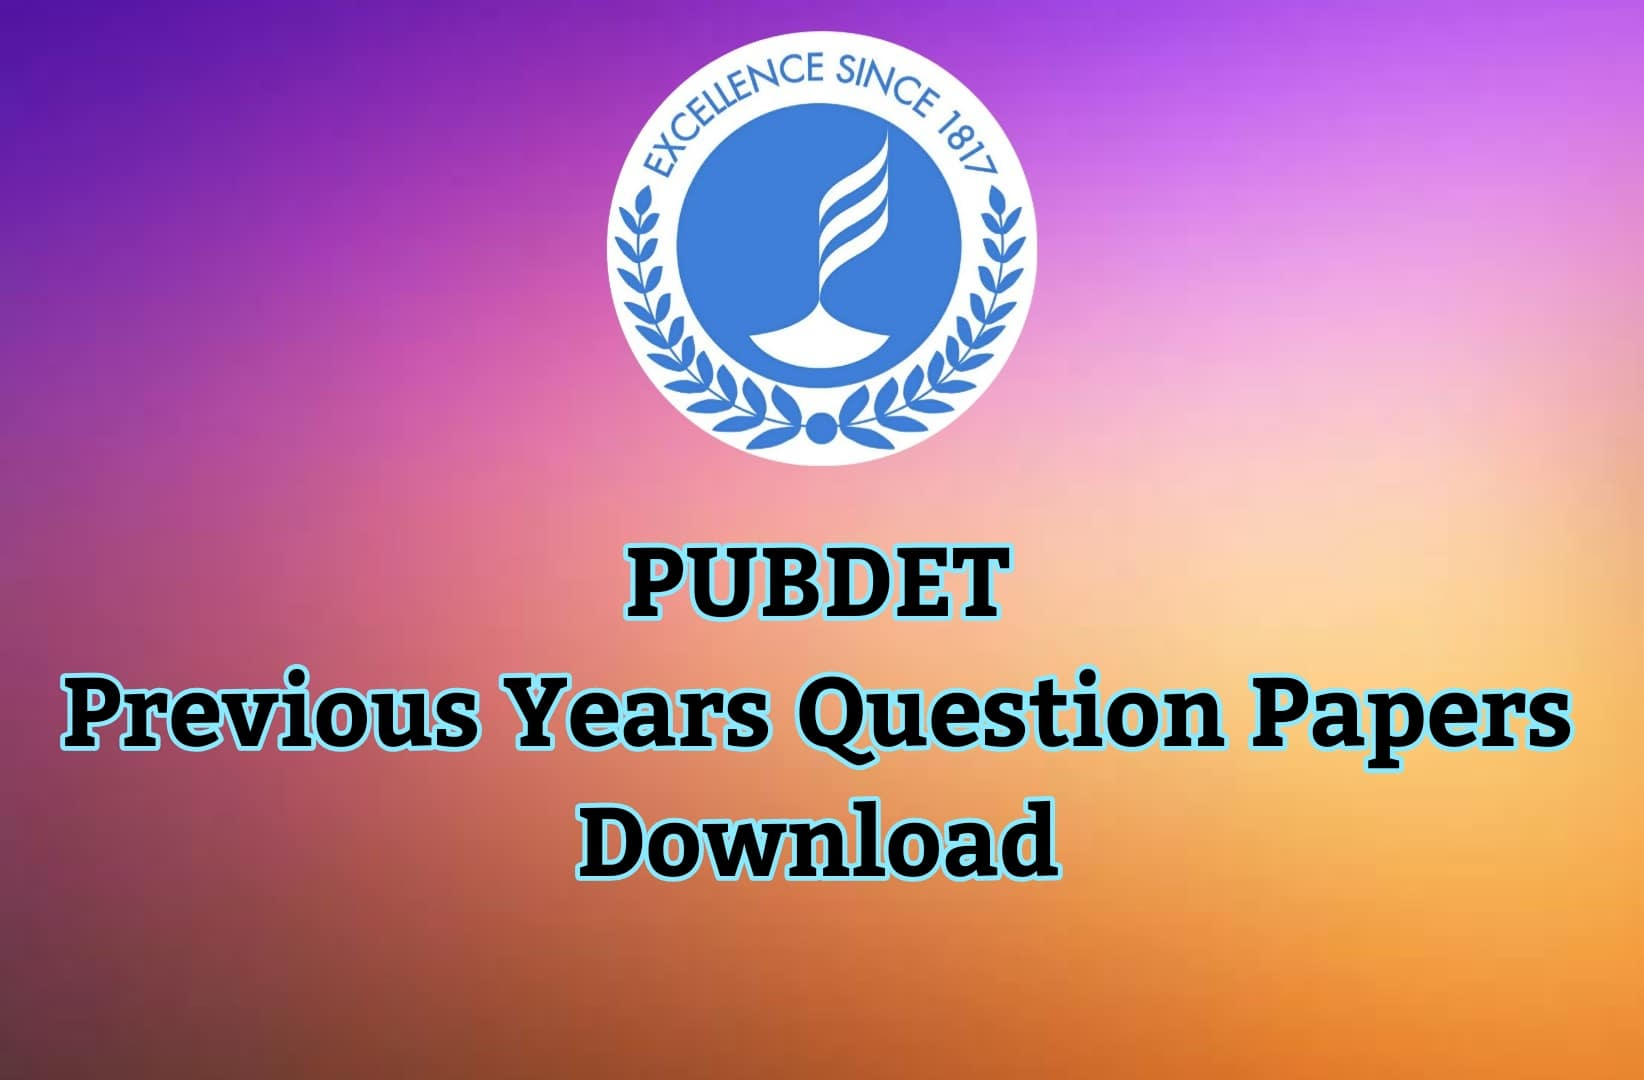 Download PUBDET Previous Years Question Papers - Presidency University 1